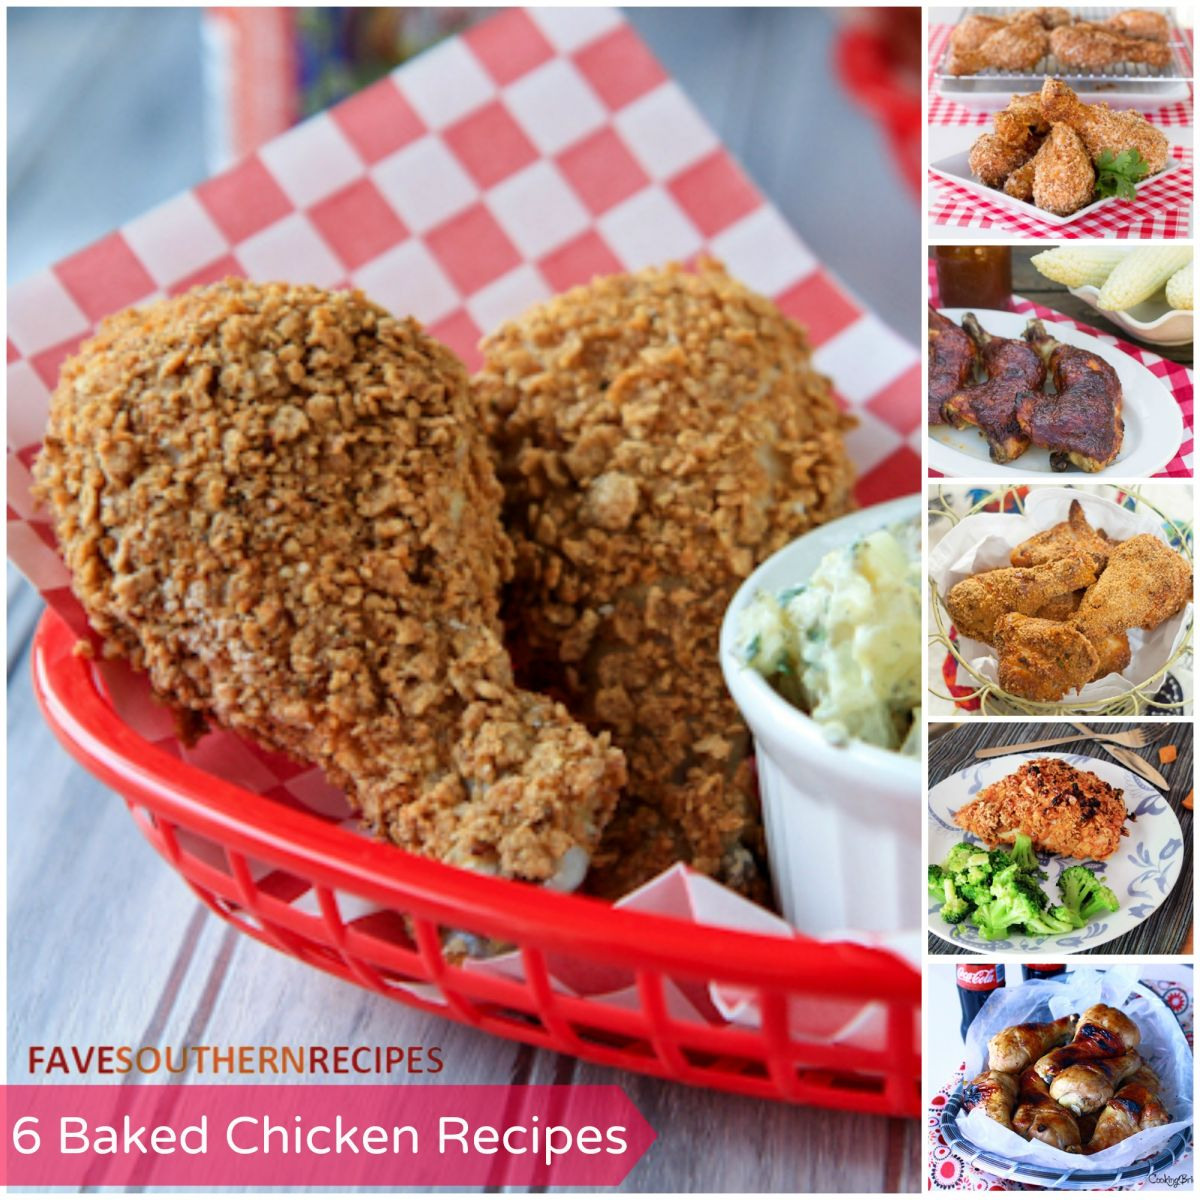 Healthy Meal Ideas Baked Chicken Recipes